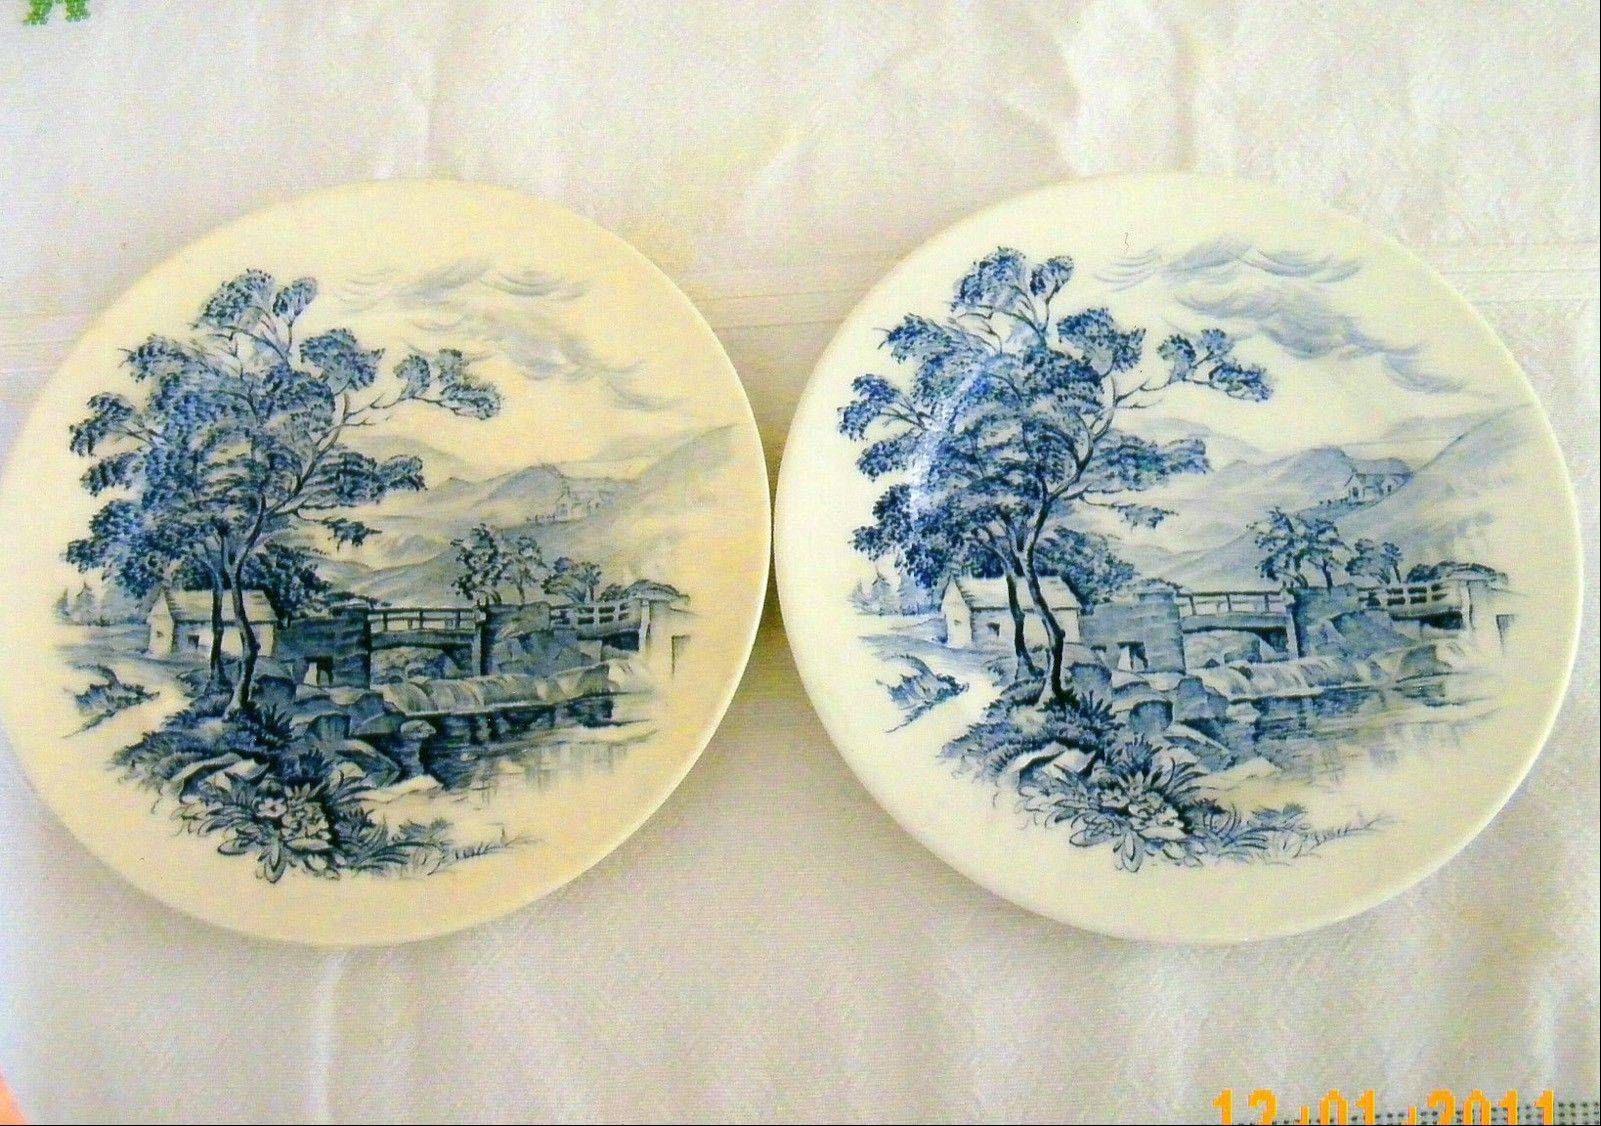 These blue and white plates are marked �Wedgwood & Co. Ltd�, but which Wedgwood is it?